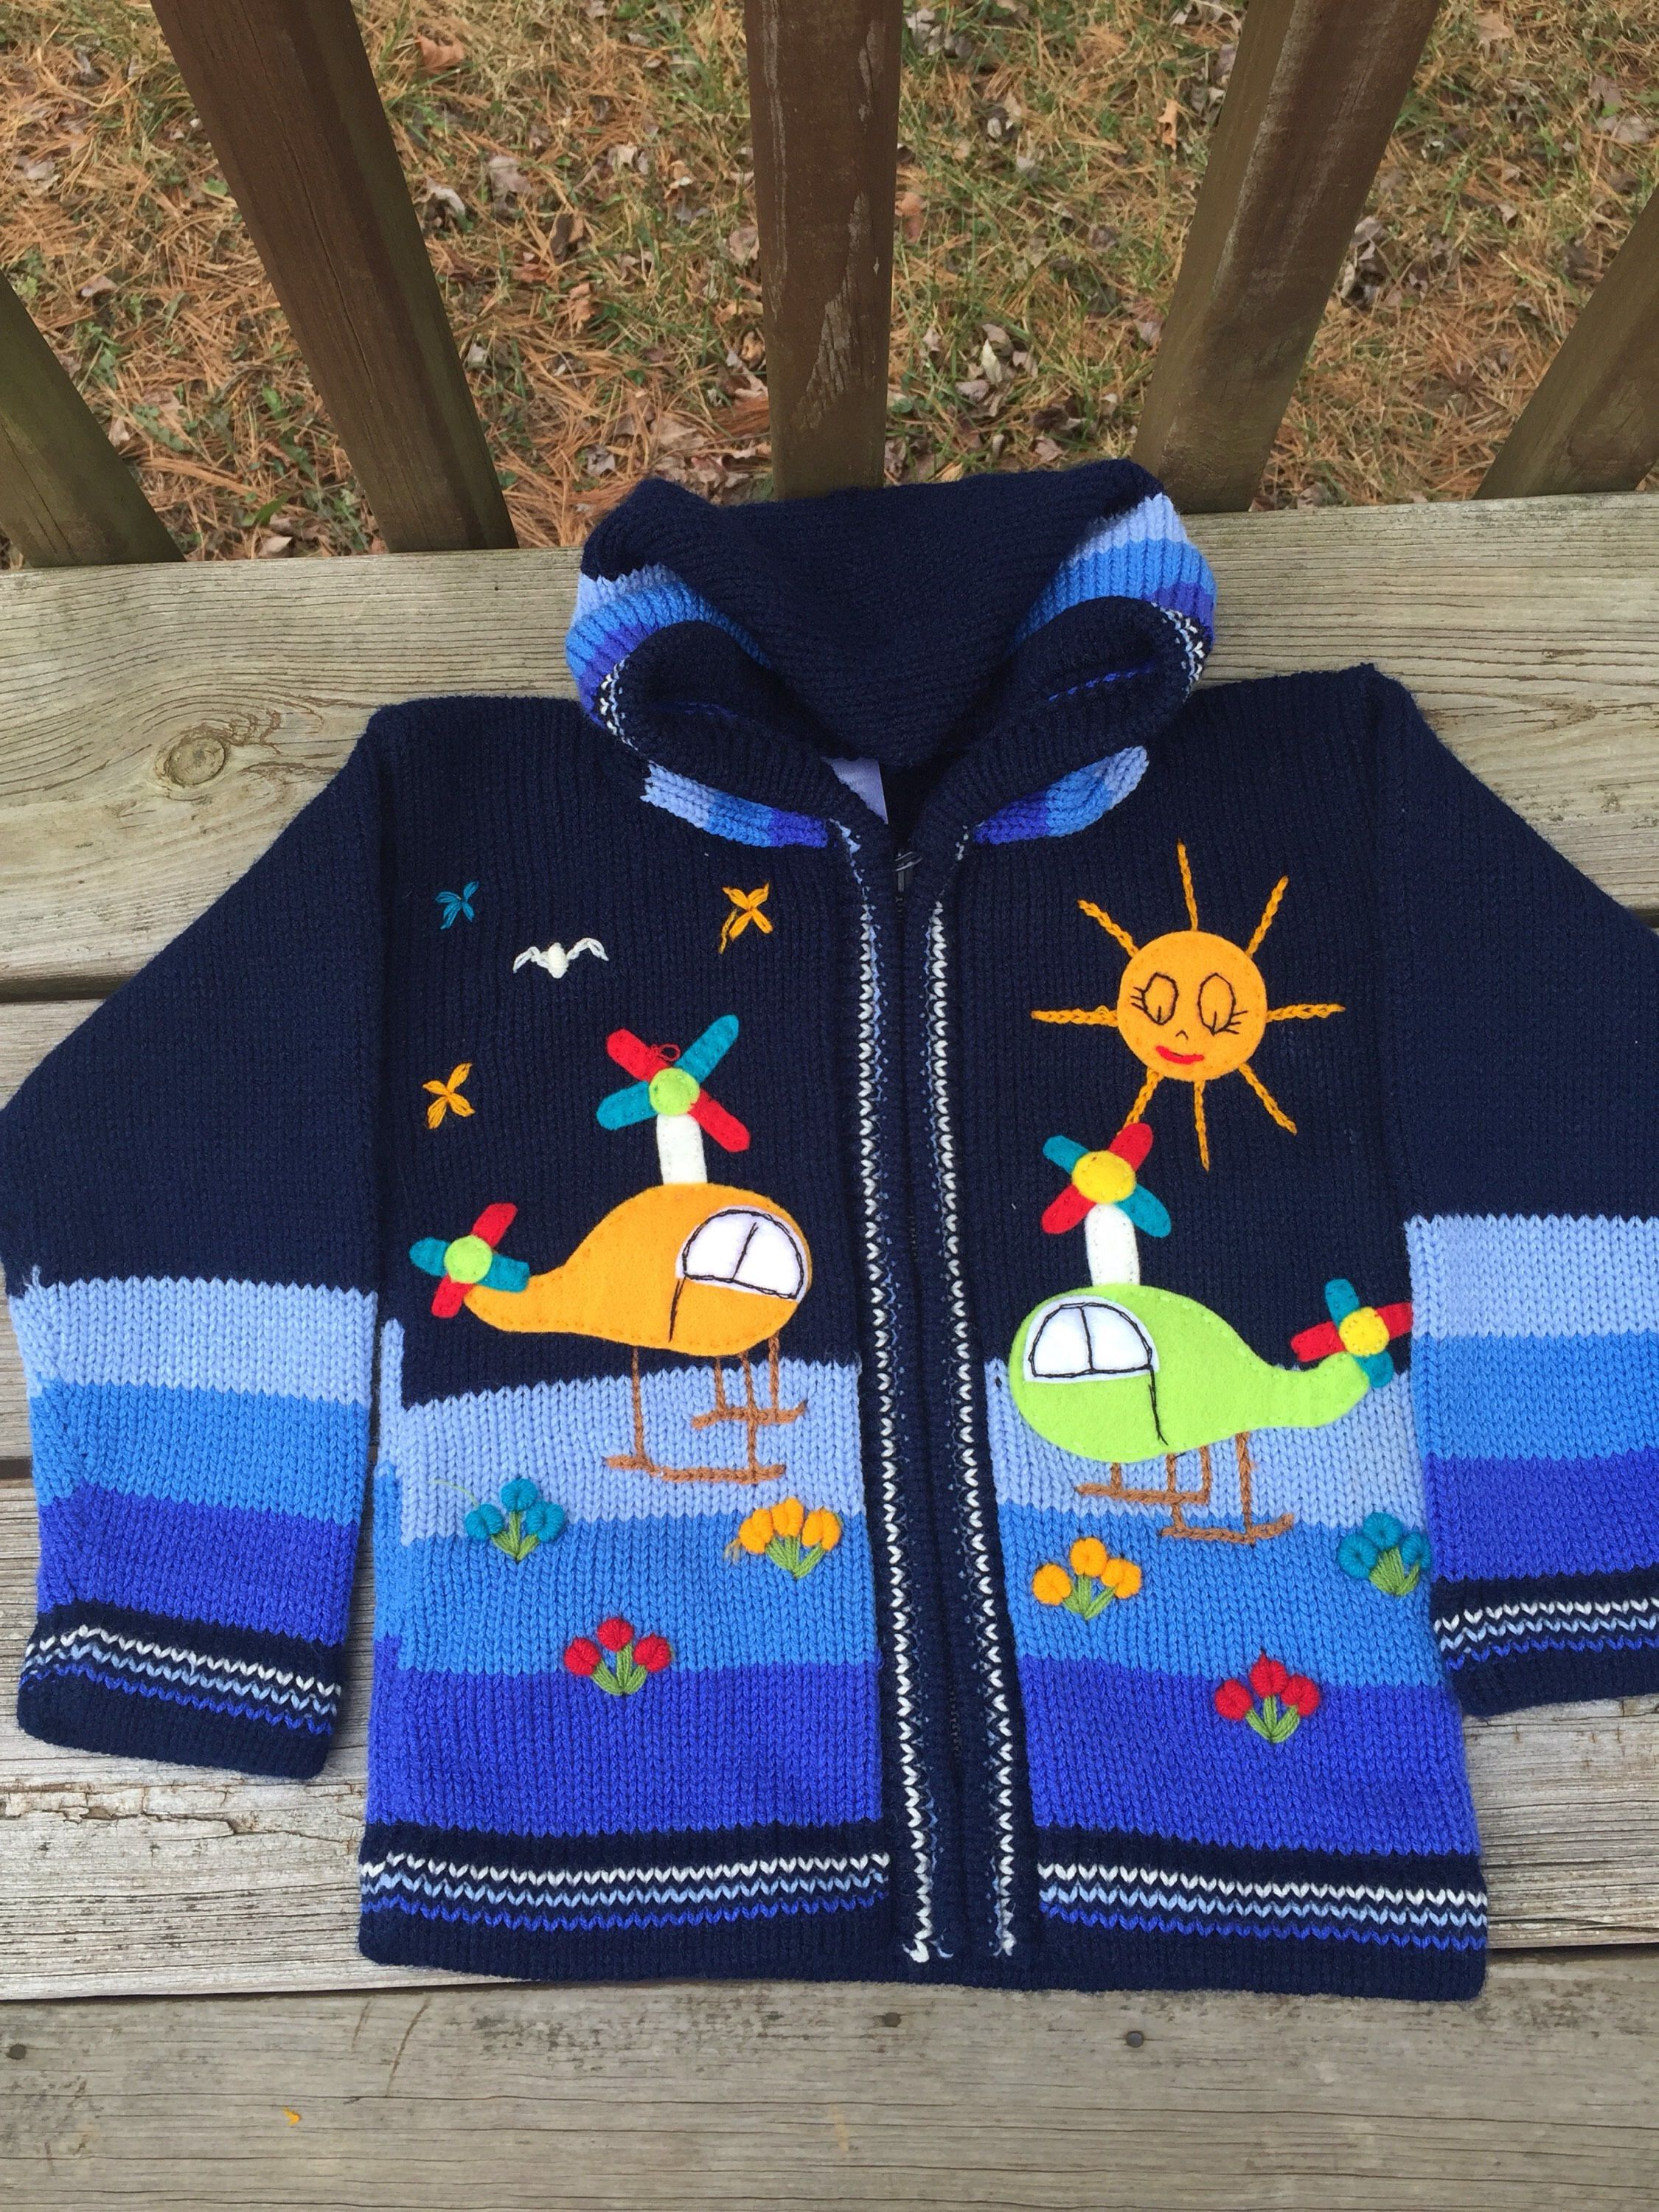 Blue Kids Sweater Zip Hoodie Toddler Sweater Kids Clothing Knit Sweater Kids Cardigan Kids Clothes Handmade Sweater Hipster Chopter